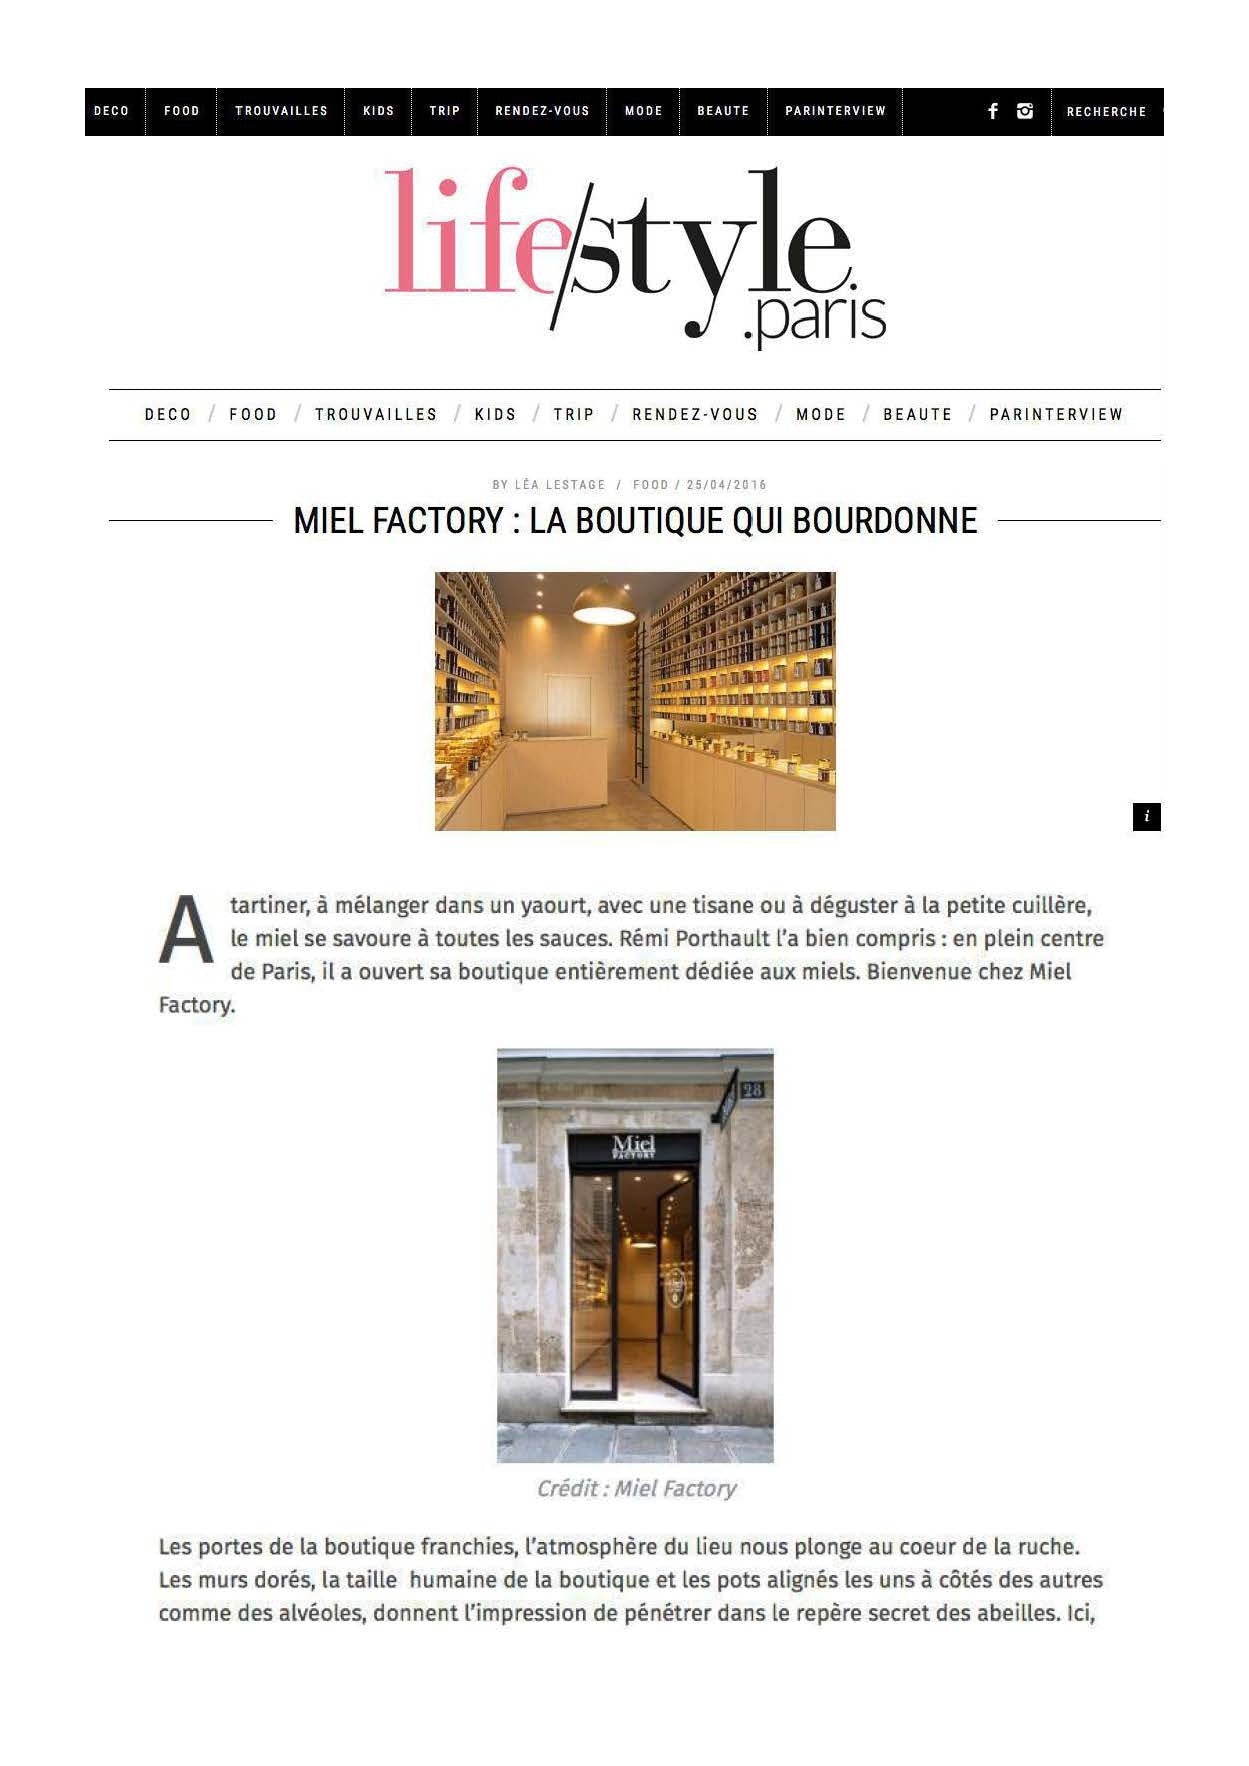 Miel Factory : la boutique qui bourdonne